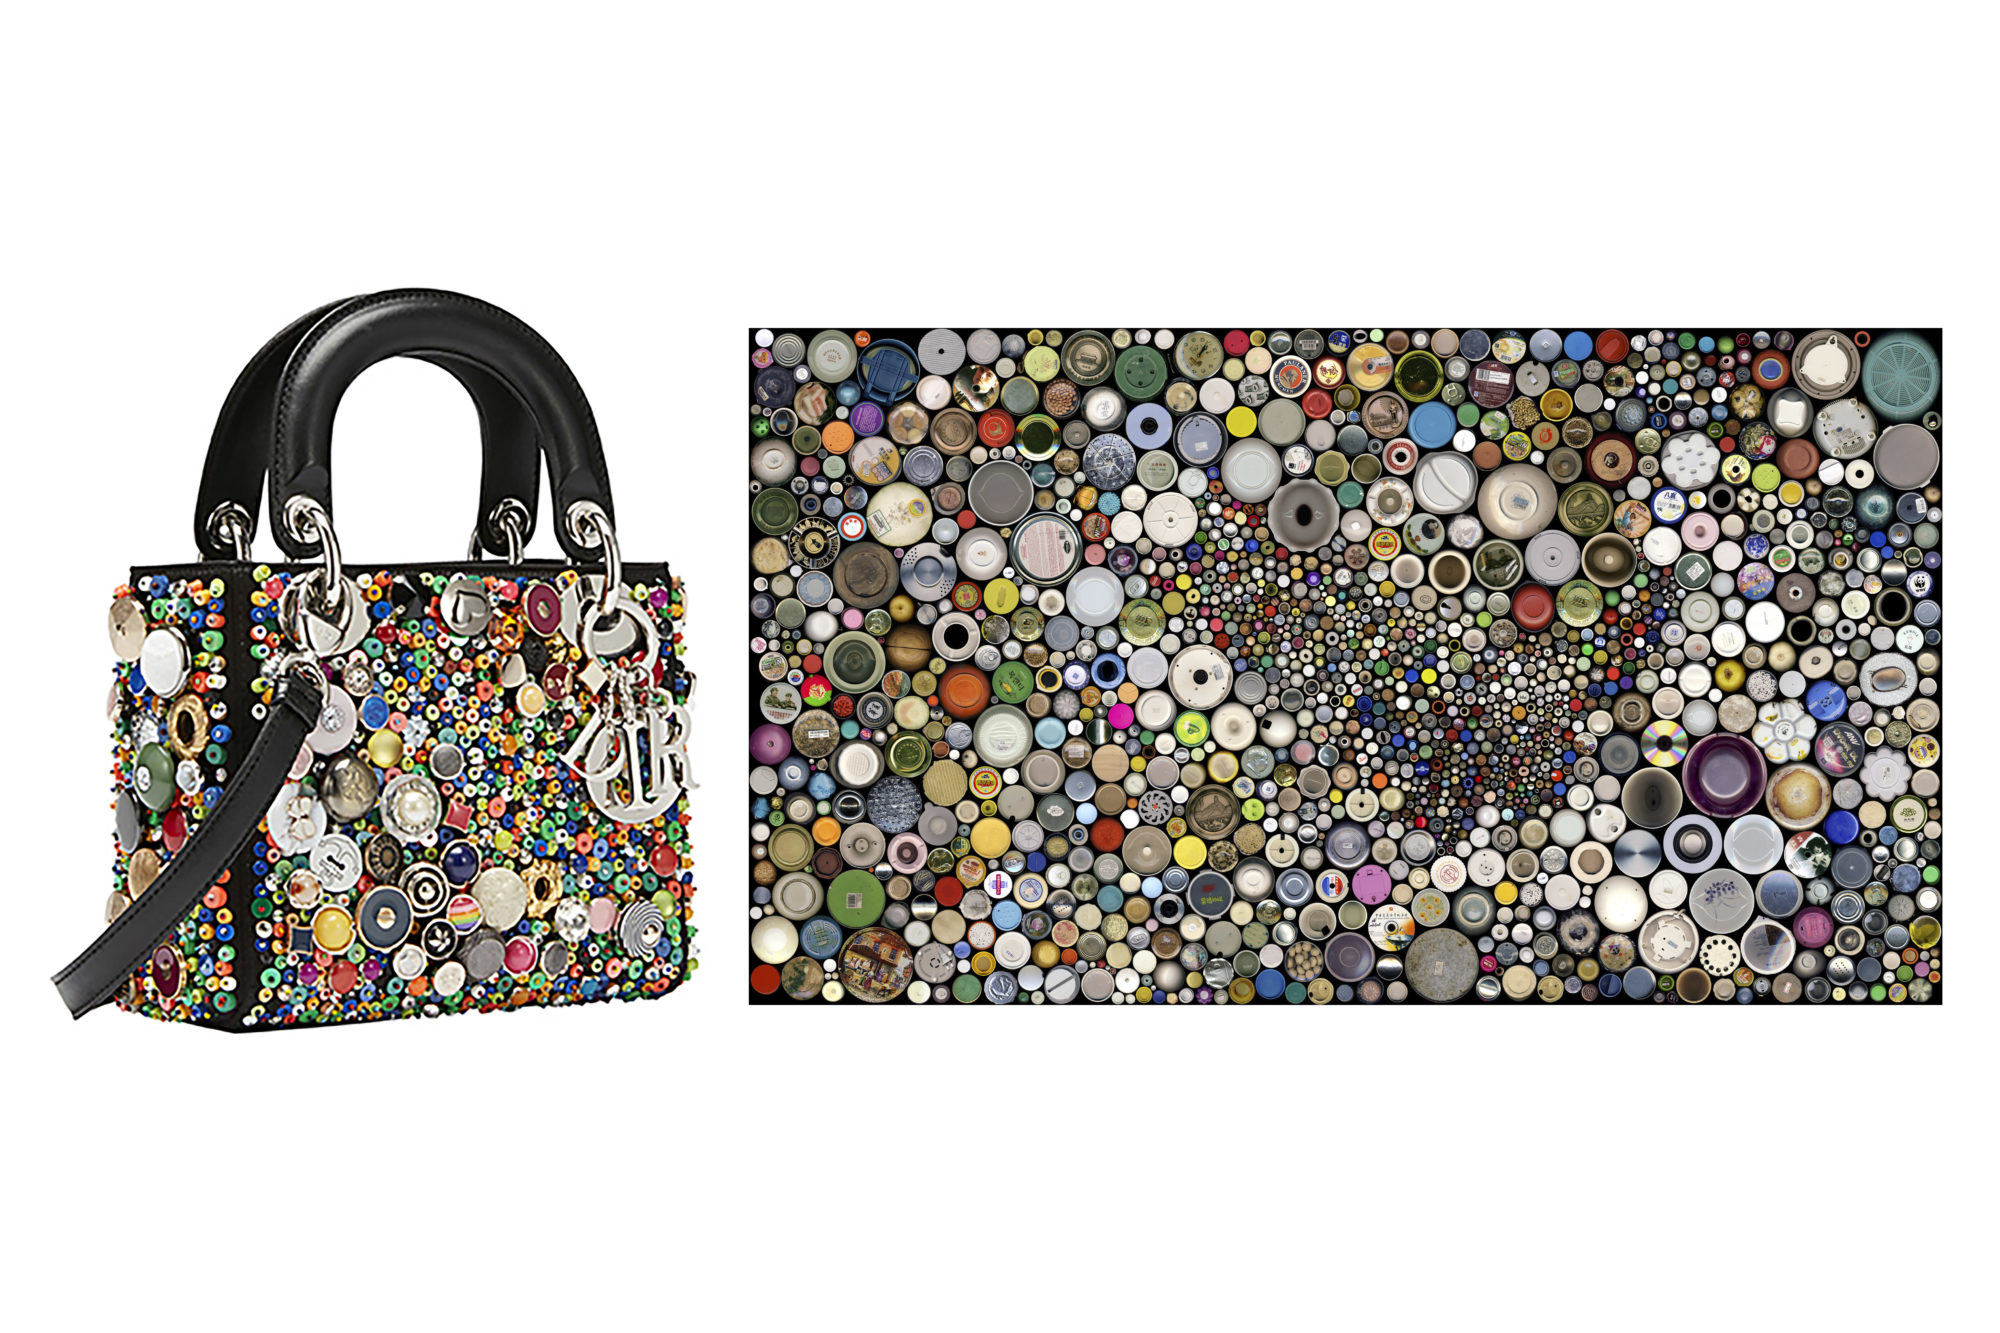 The Lady Dior Handbag Gets a Striking New Look - SURFACE 234045a88d